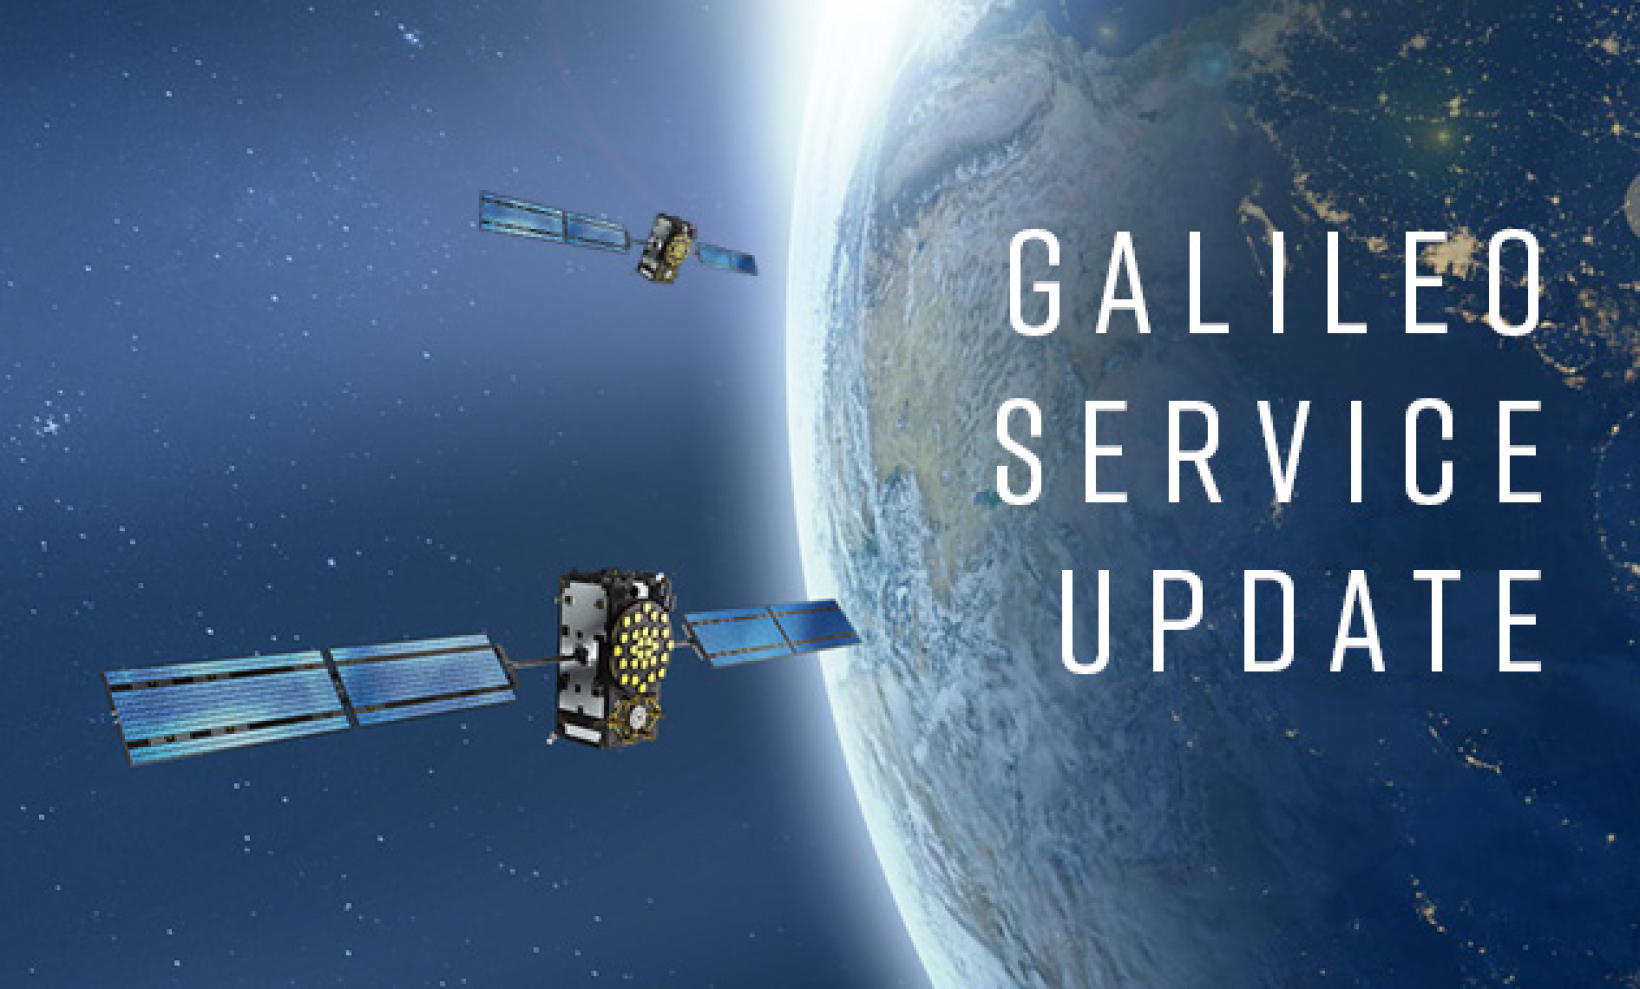 Galileo Service Update